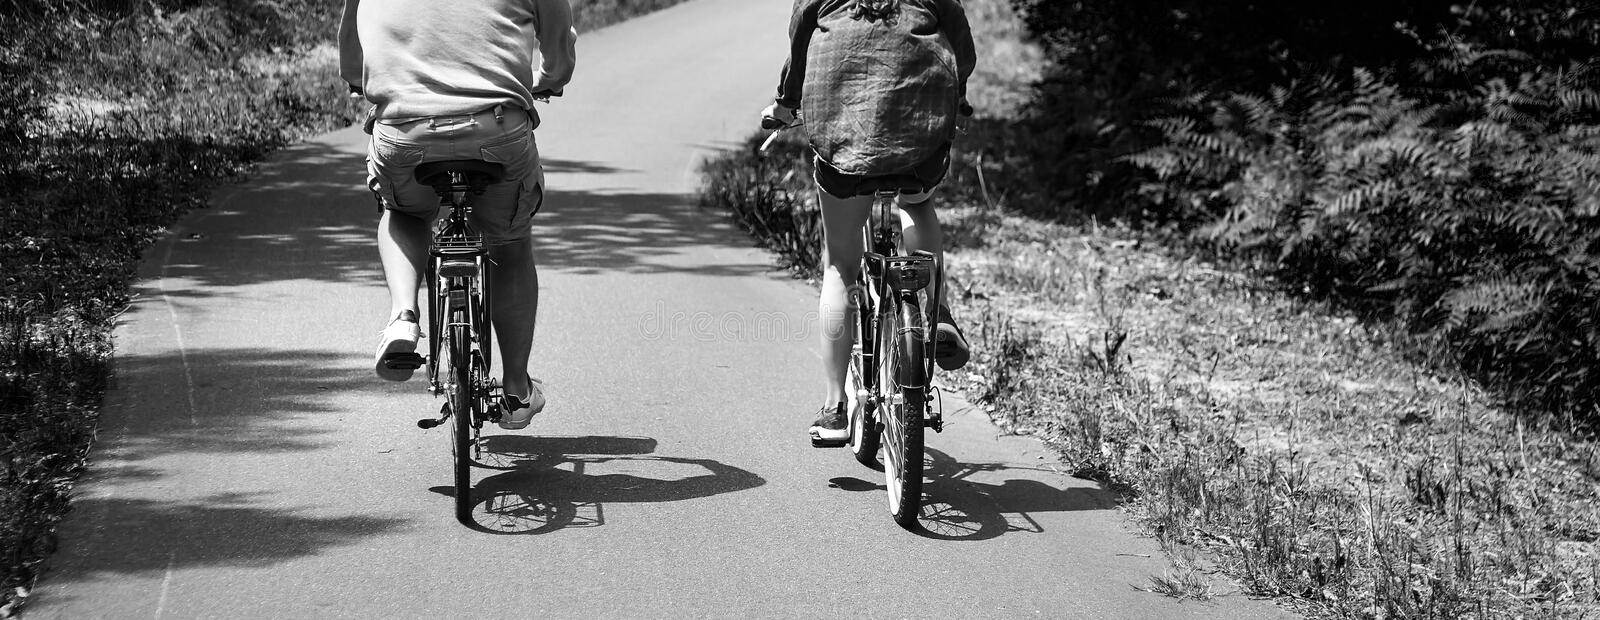 Loving married couple riding on bicycles. A man in shorts and a woman in a shirt. View from the back. Bike ride in the nature royalty free stock photography